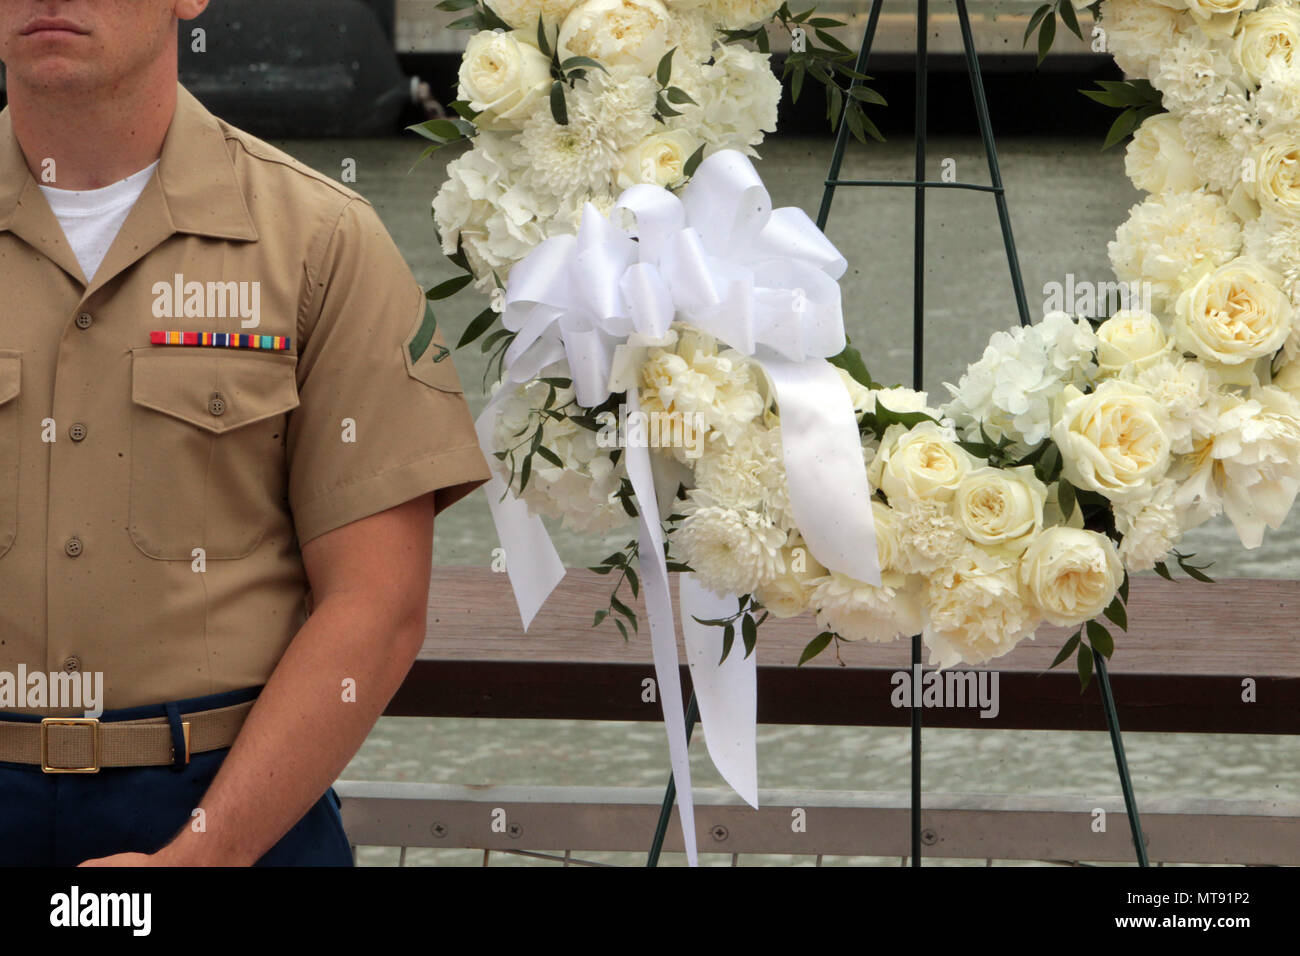 New York, NY, USA. 28th May, 2018. A.U.S Marine attends the 2018 Memorial Day Ceremony held aboard the U.S.S Intrepid Sea, Air, Space Museum Complex on May 28, 2018 in New York City. Credit: Mpi43/Media Punch/Alamy Live News - Stock Image